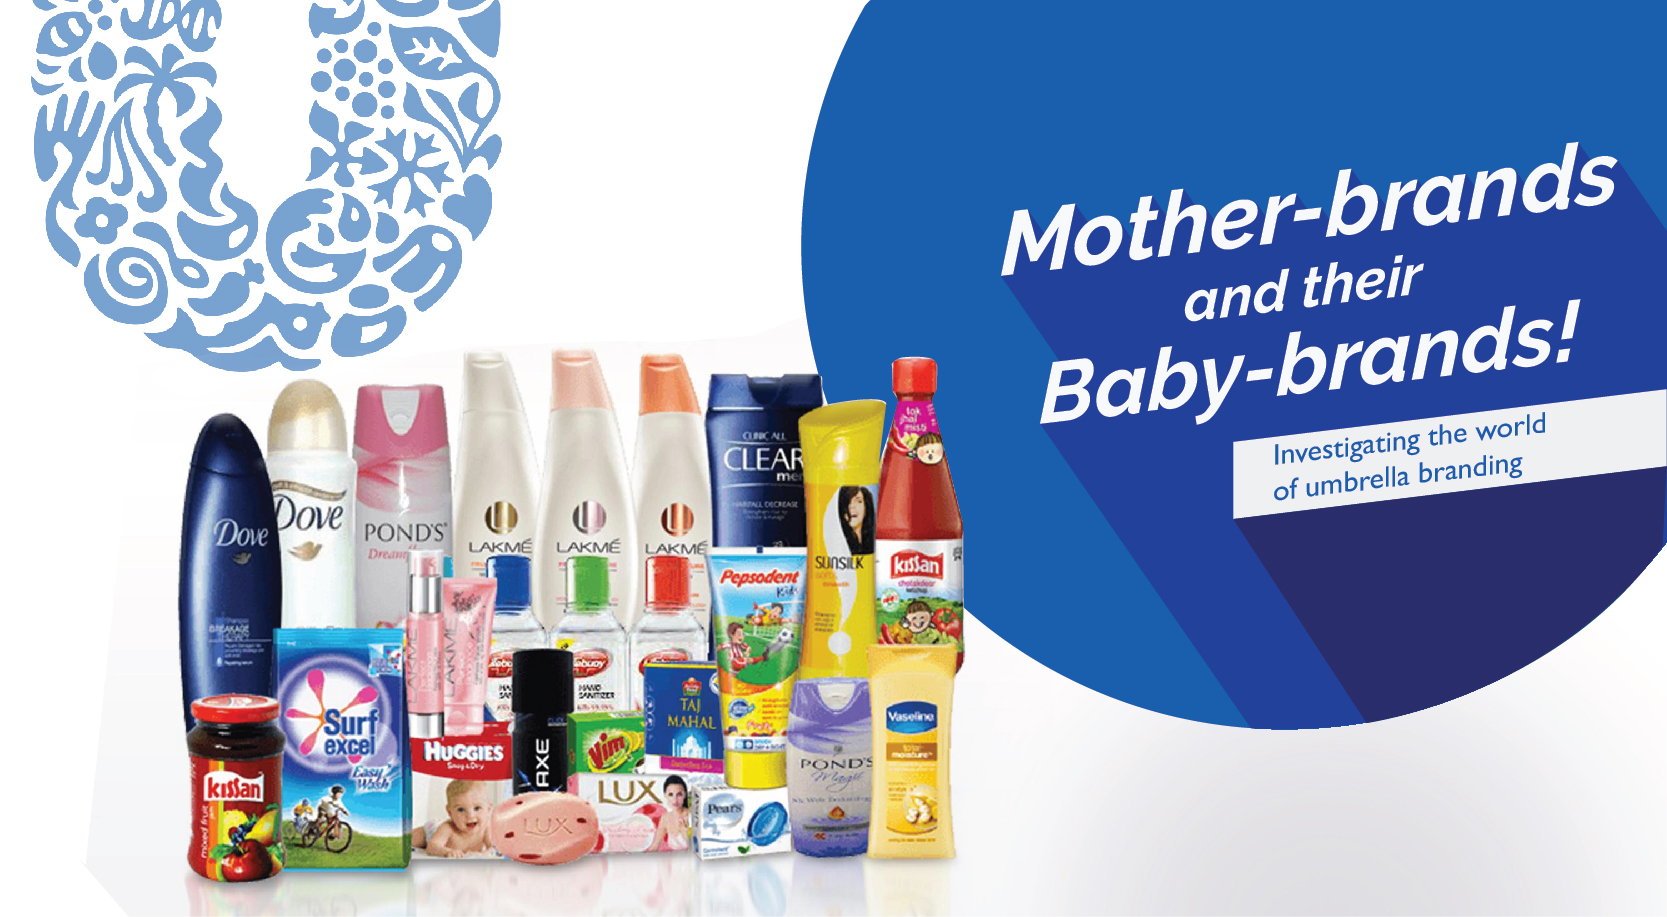 MOTHER-BRANDS AND THEIR BABY-BRANDS!